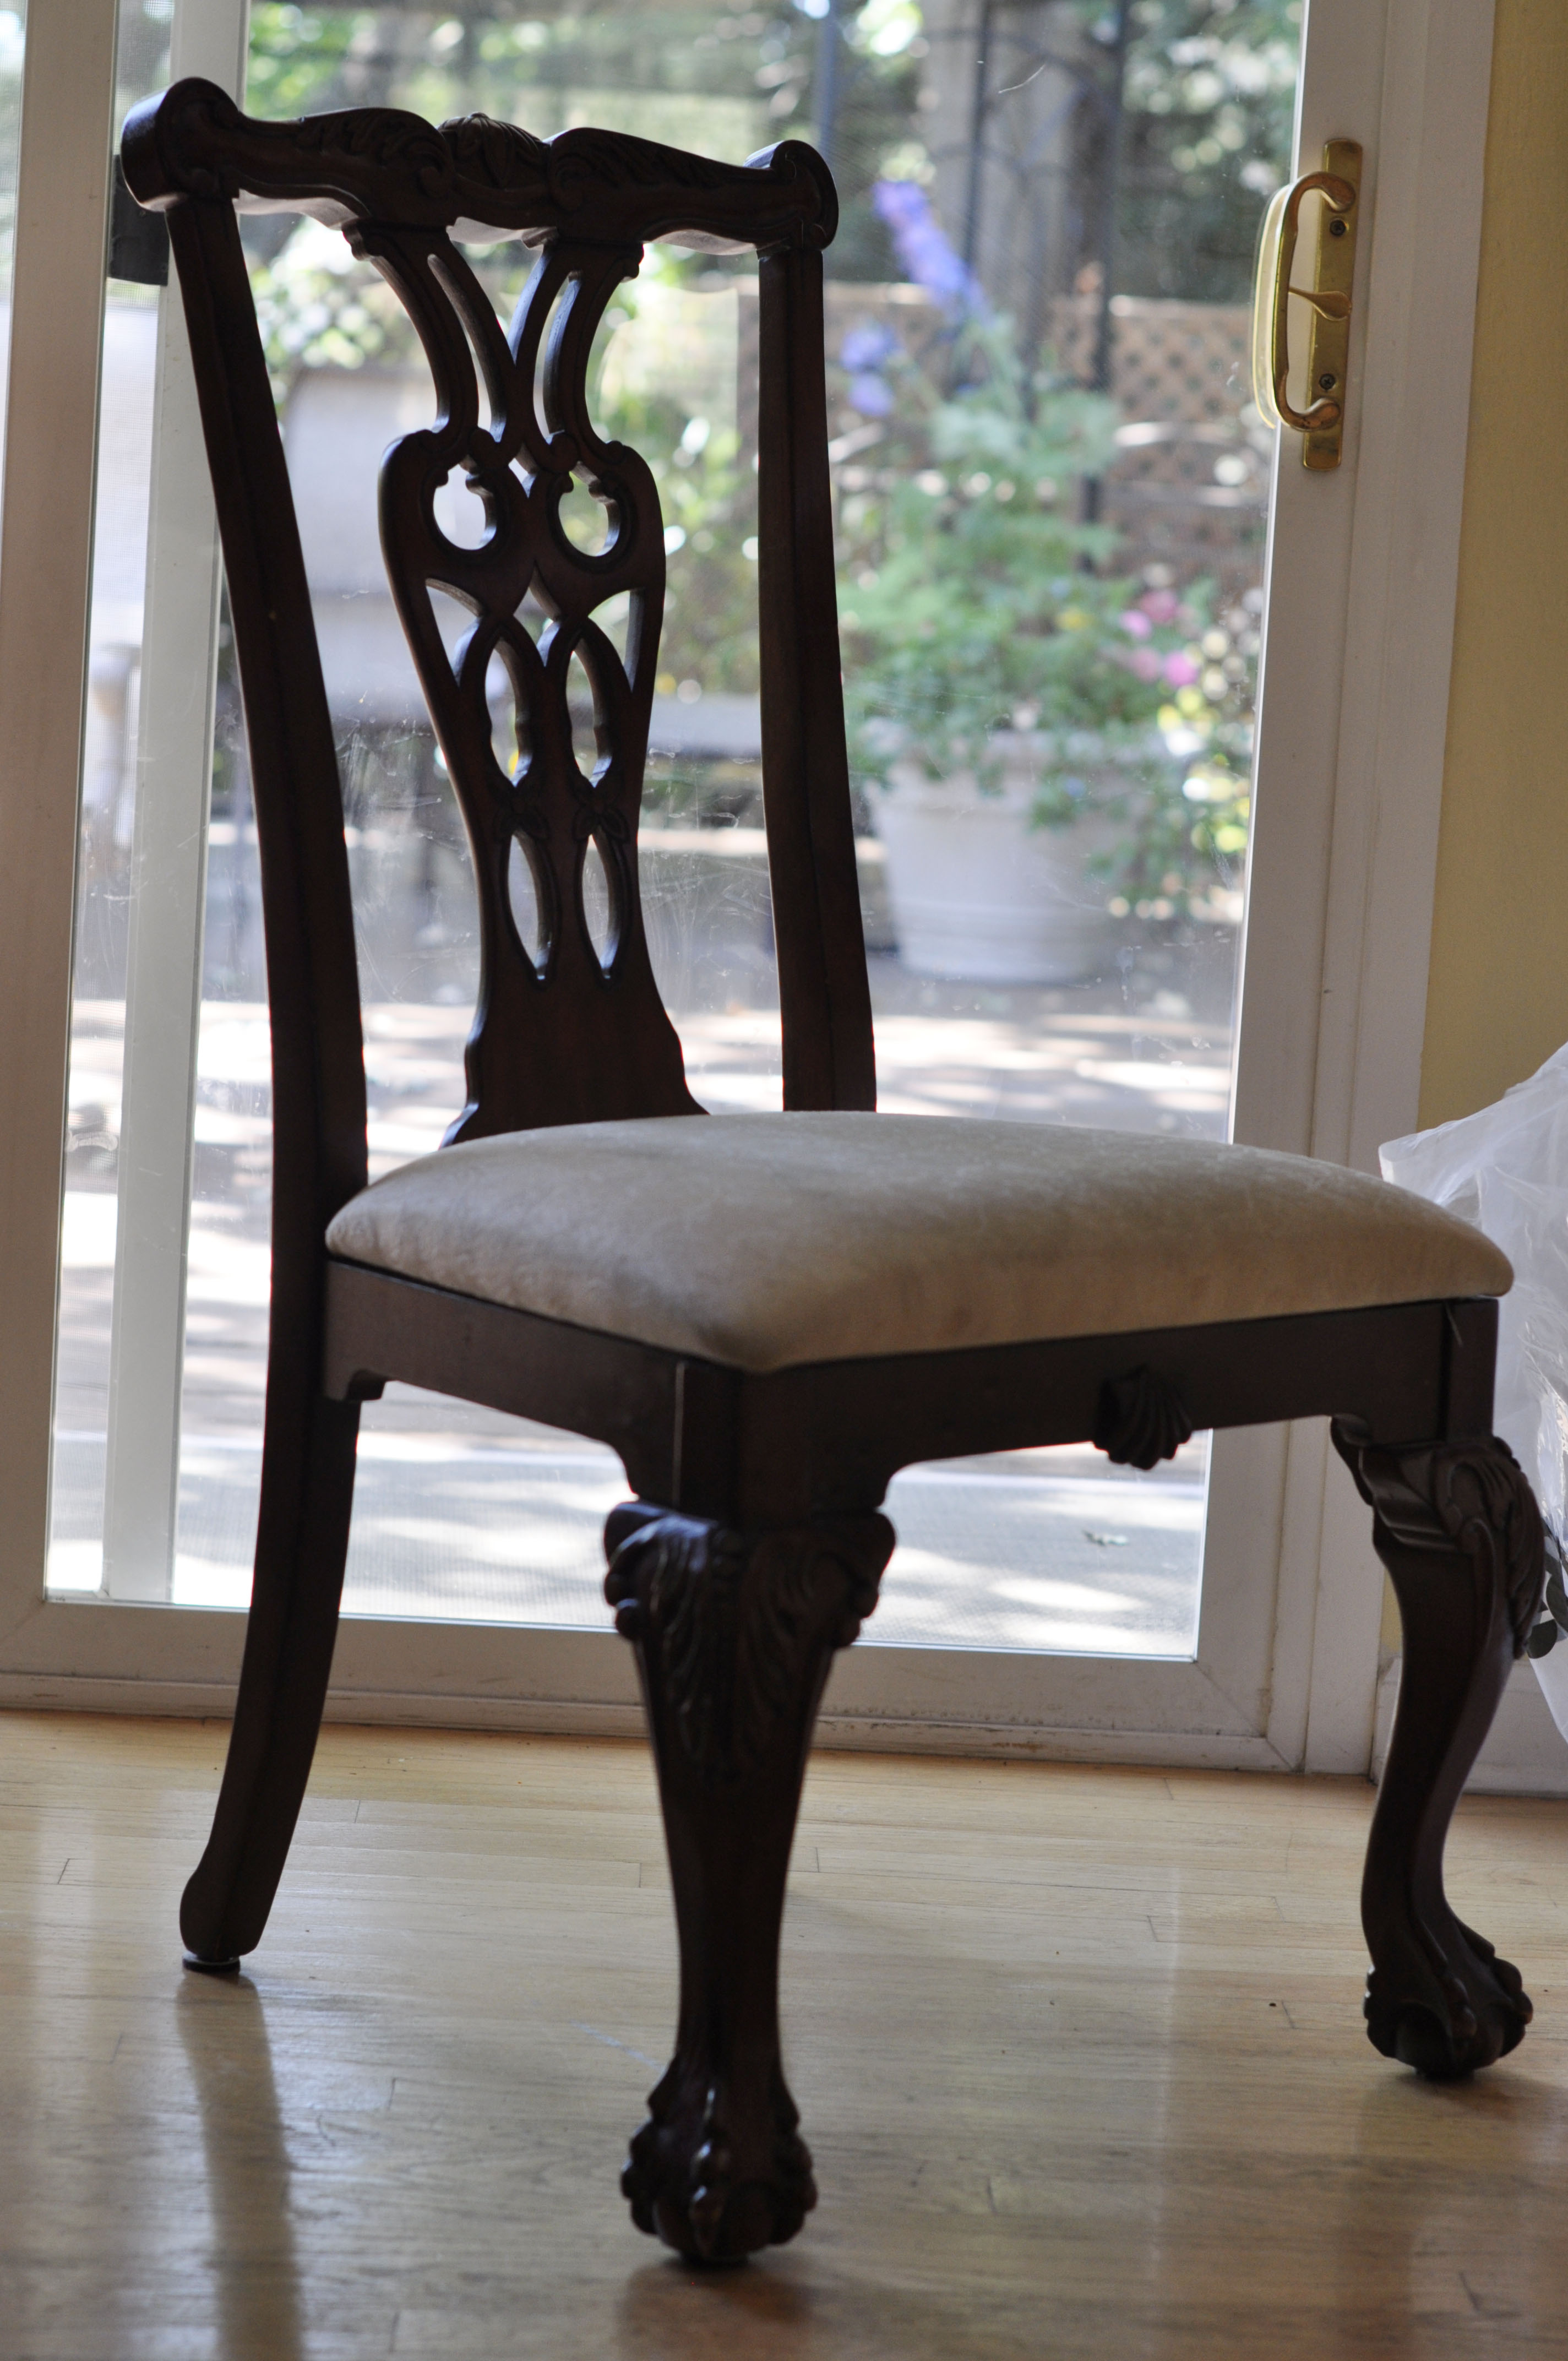 On Style Today 2020 12 25 Cost To Reupholster Dining Room Chairs Here